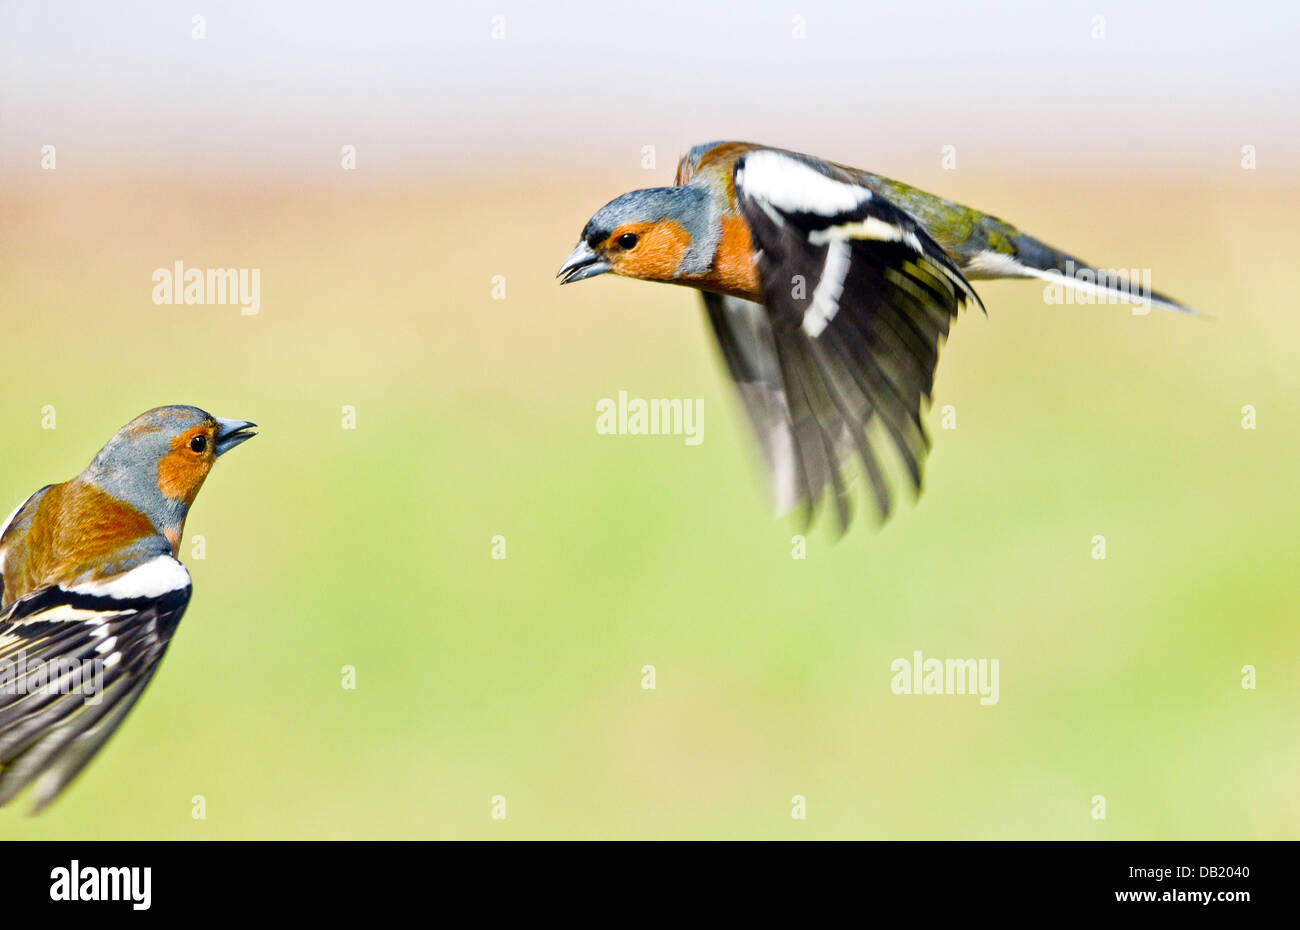 Chaffinches in flight Stock Photo